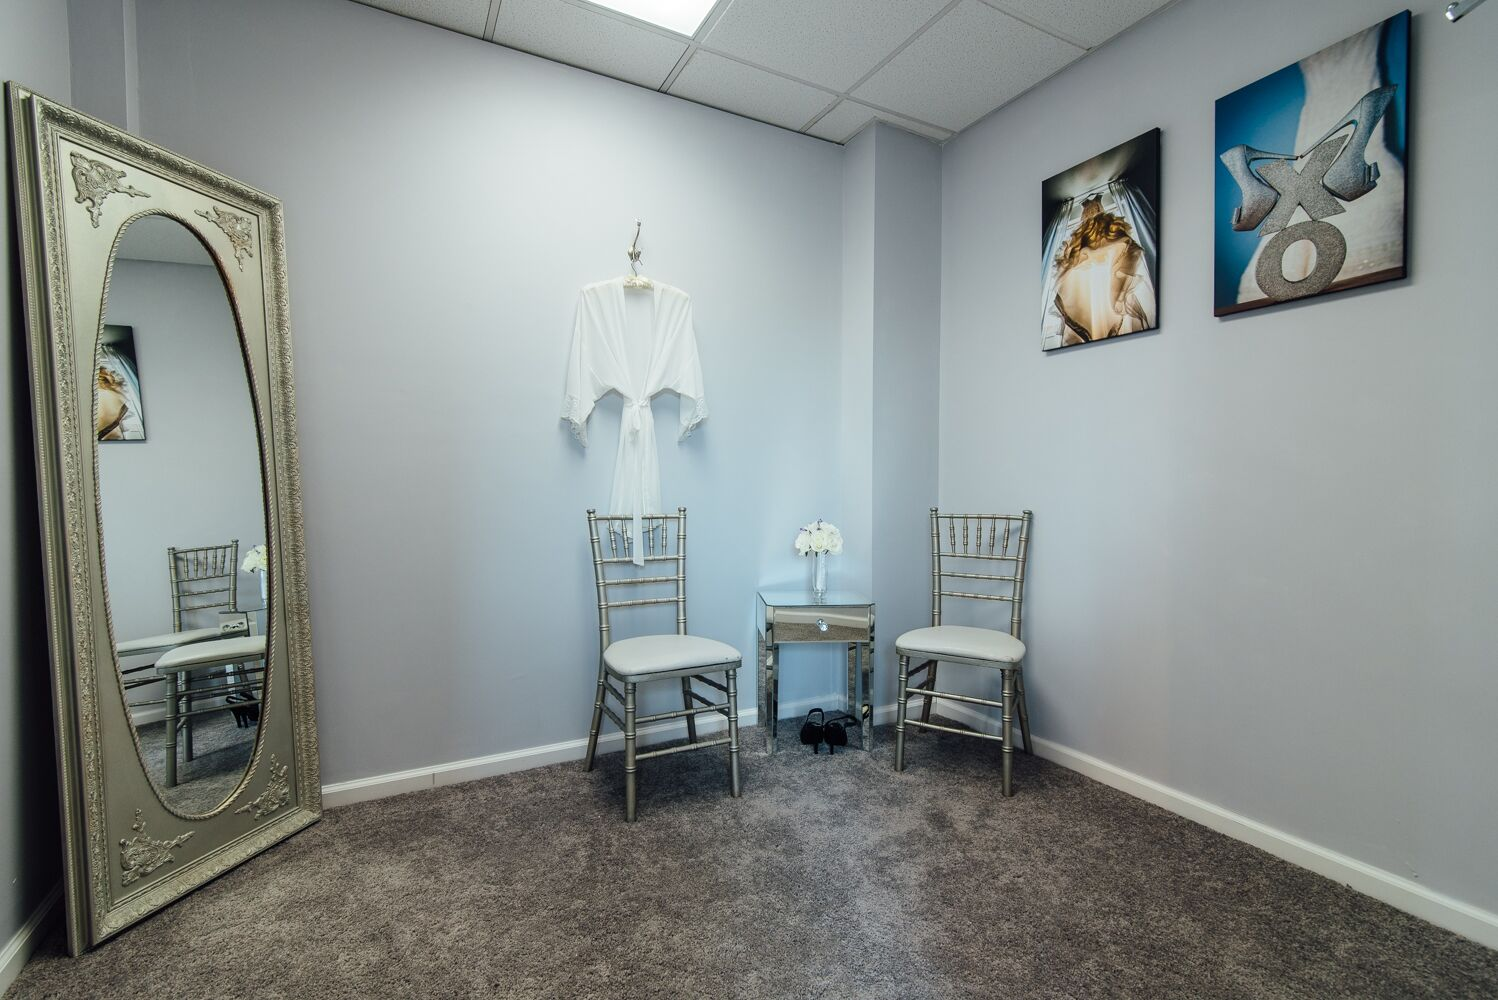 Bridal Salons in Philadelphia, PA - The Knot